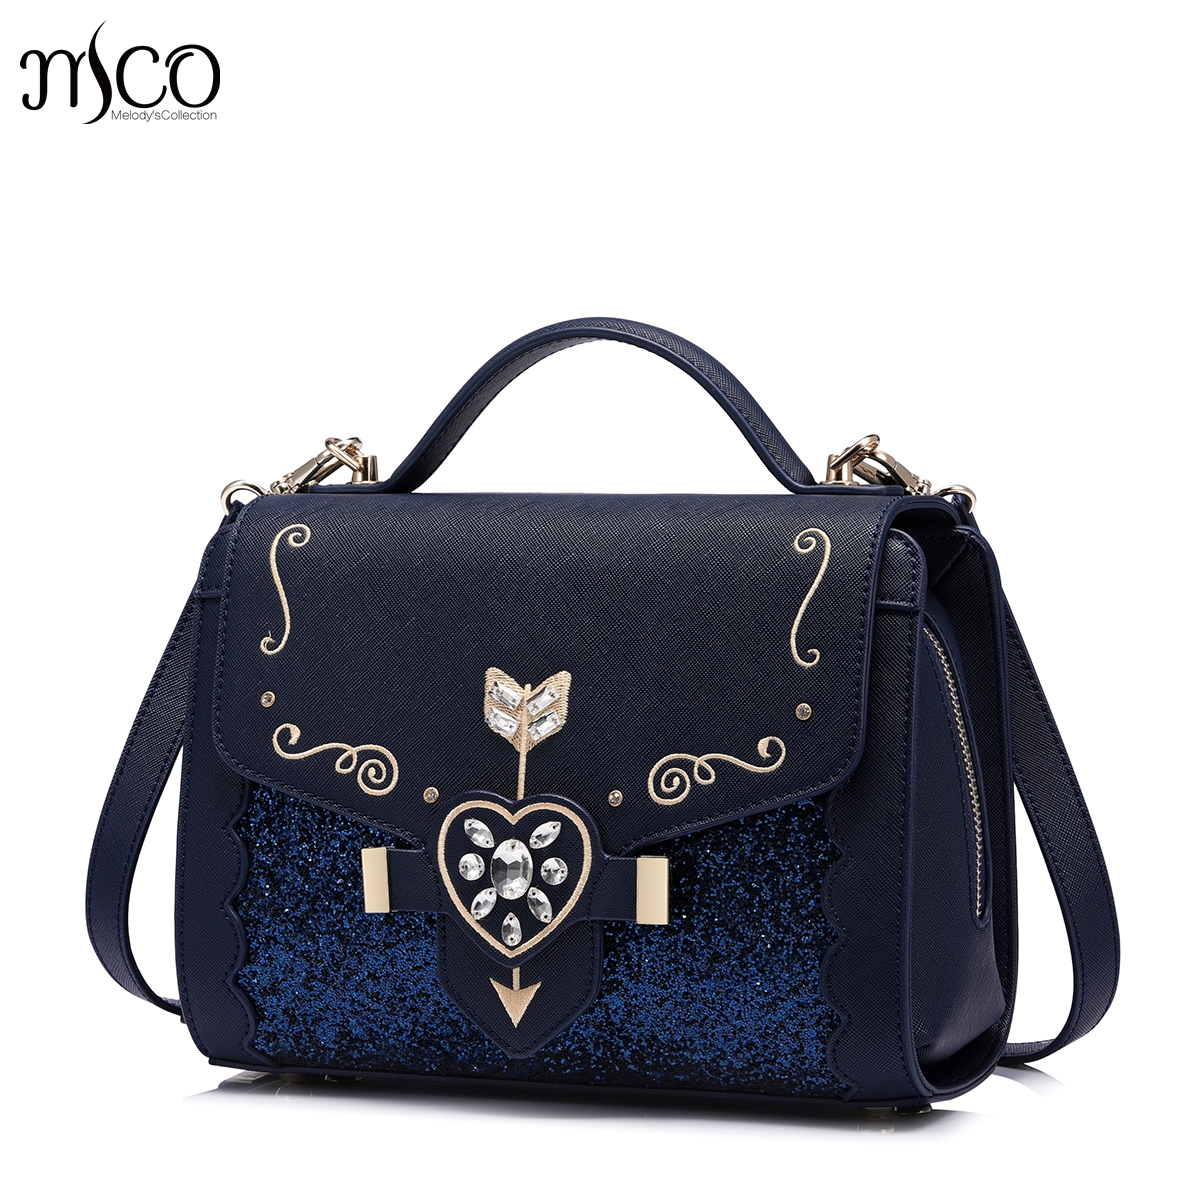 2017 Brand Design Sweet Cupid sword Diamonds PU Leather Women Handbag Ladies Shoulder Bags Cross body Bag For Girls just star brand new design fashion pearls bow pets printing pu women leather girls ladies handbag shoulder bag cross body bags